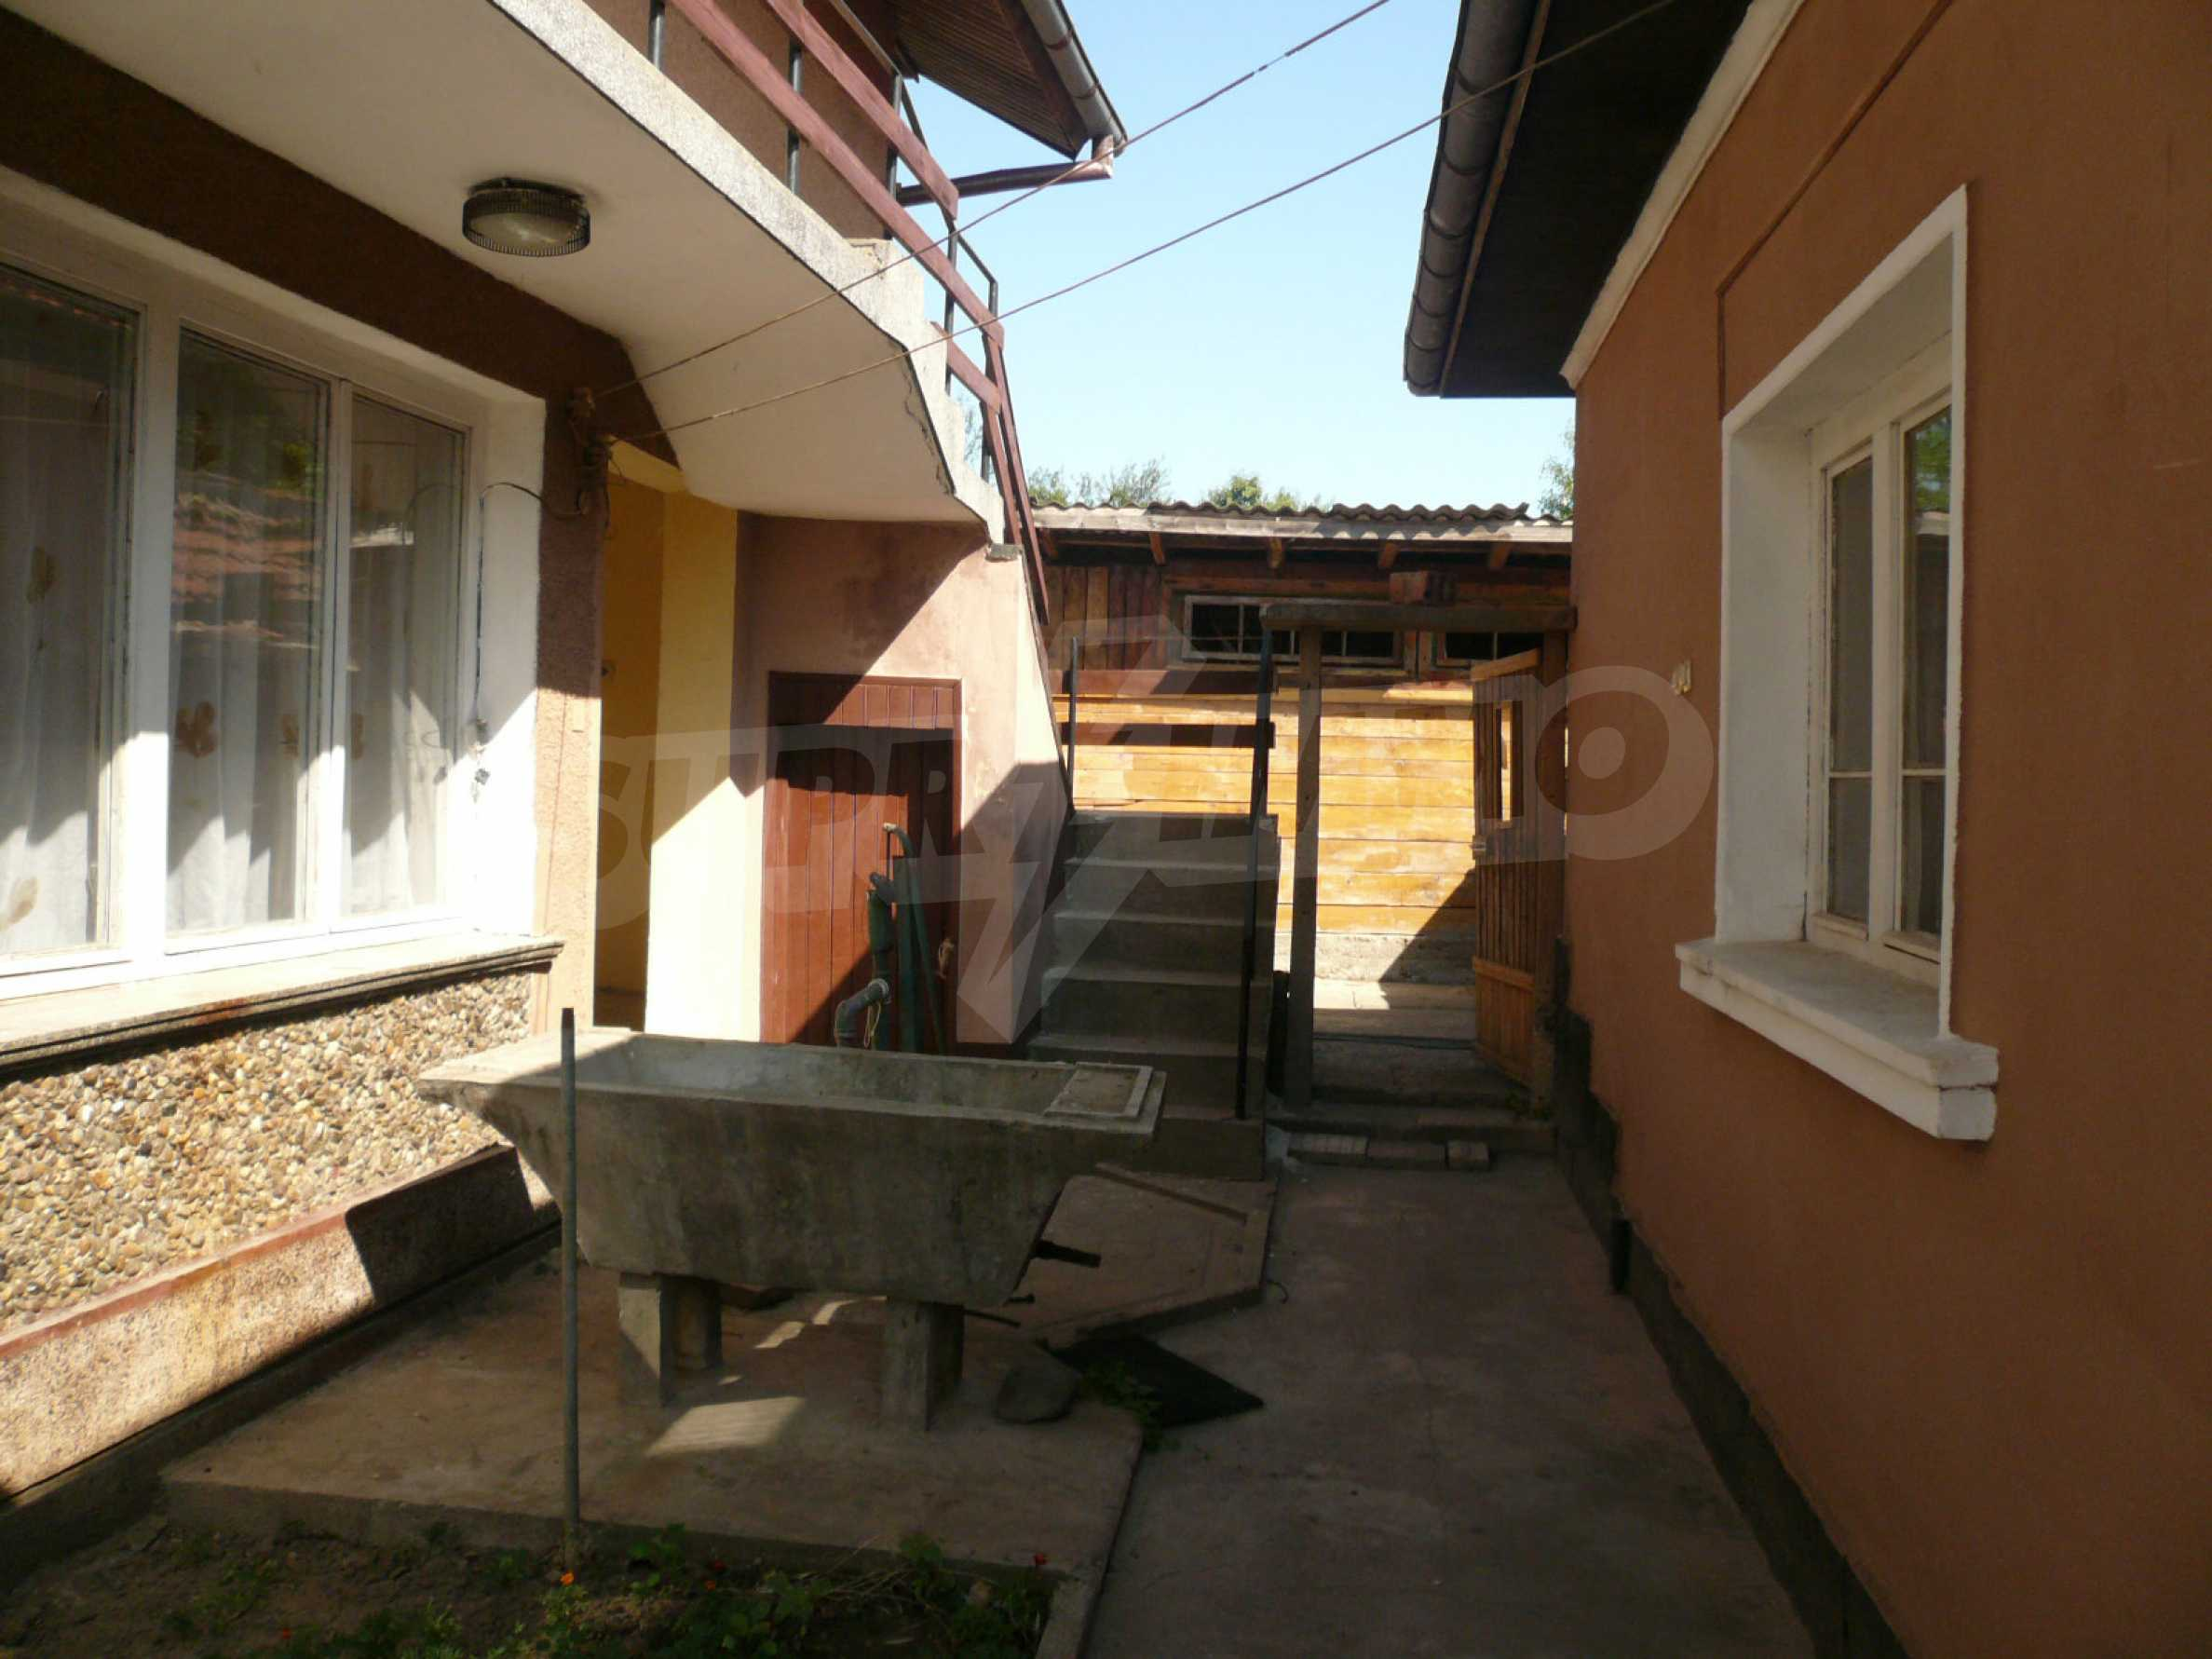 Rural houses with garden 12 km from Vidin 20